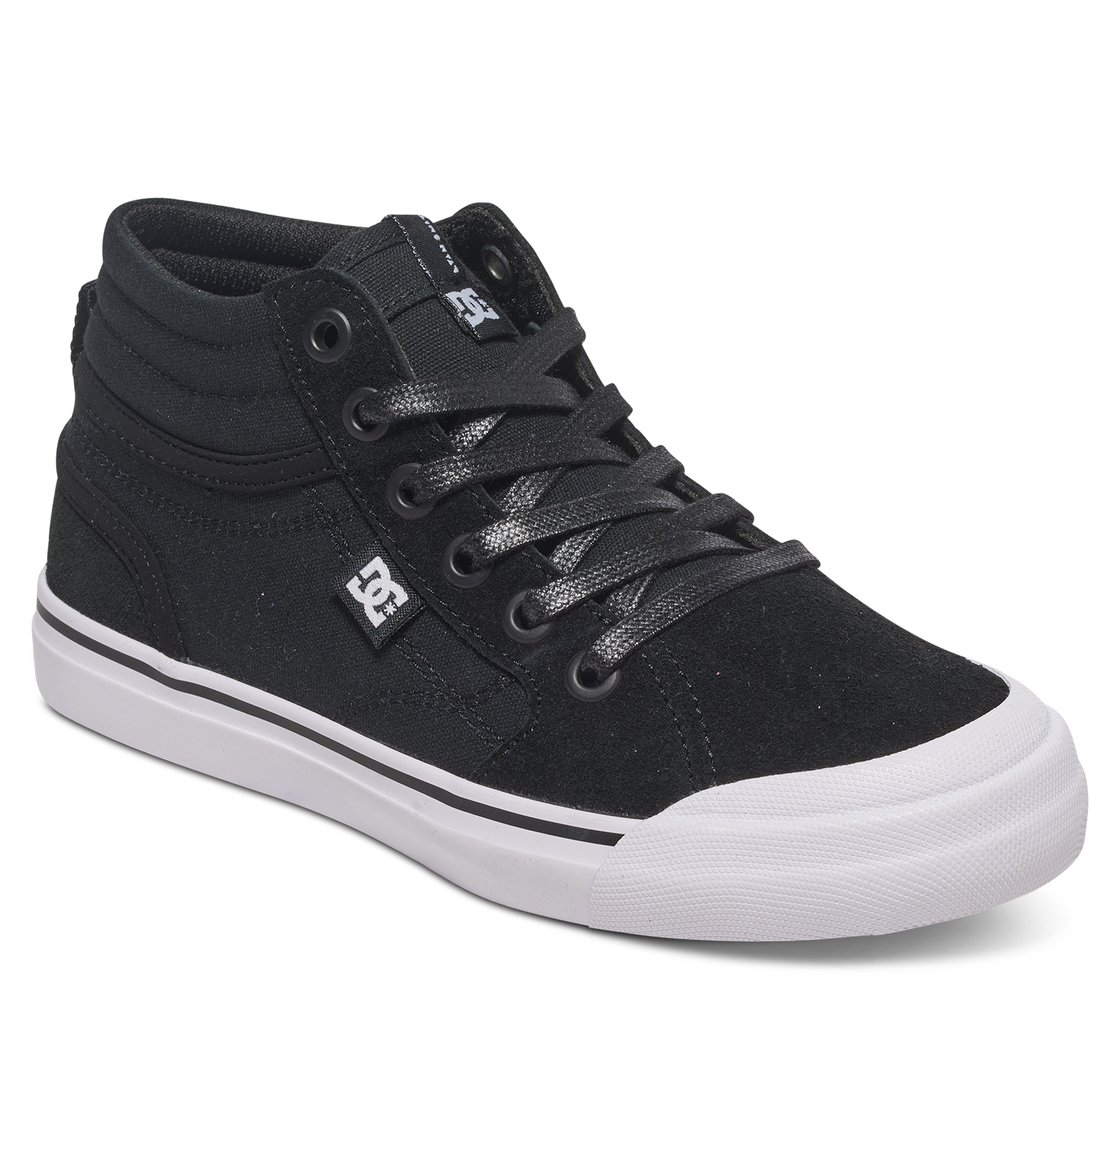 Win17 Dc Boys Evan Hi Shoes